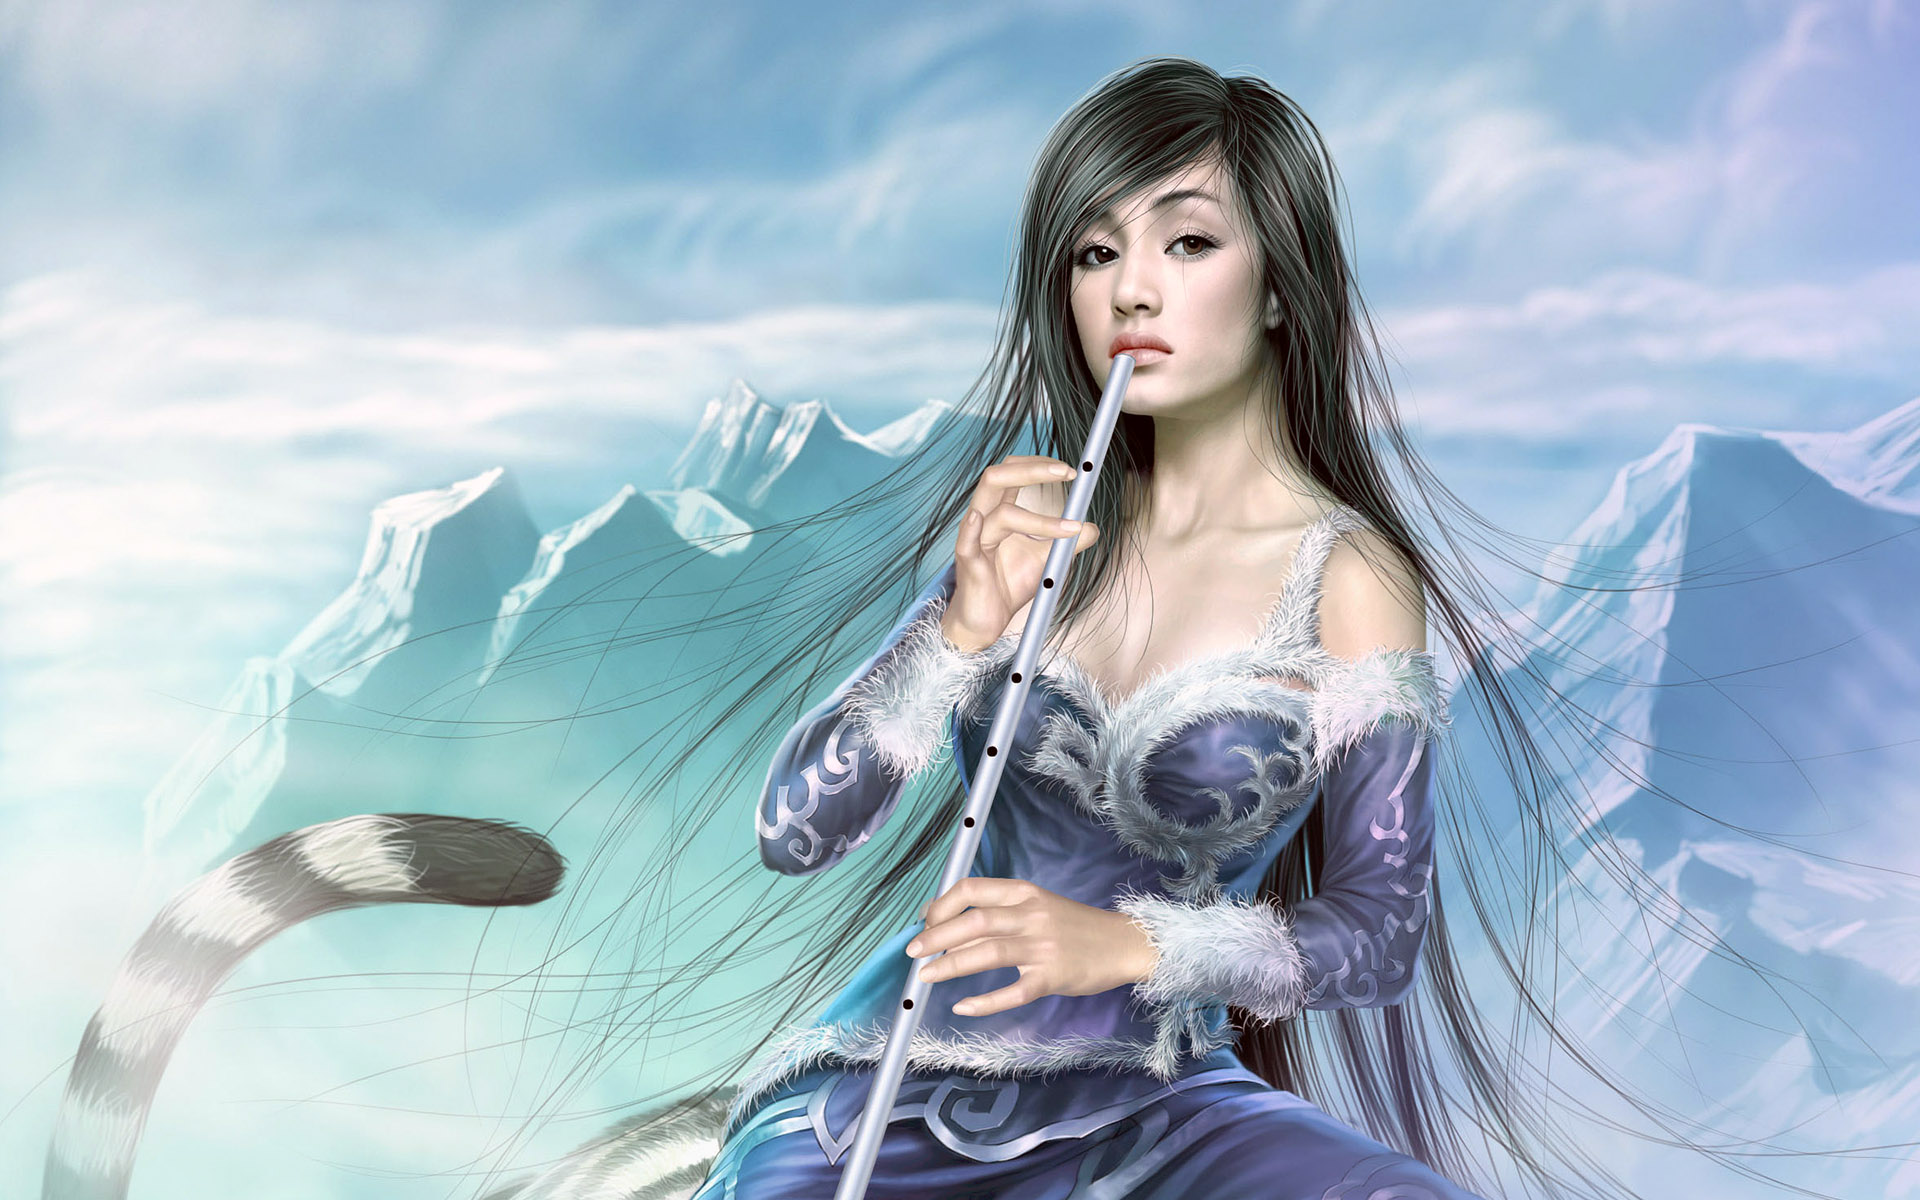 1920x1200 Fantasy girl - Flute 2 desktop PC and Mac wallpaper